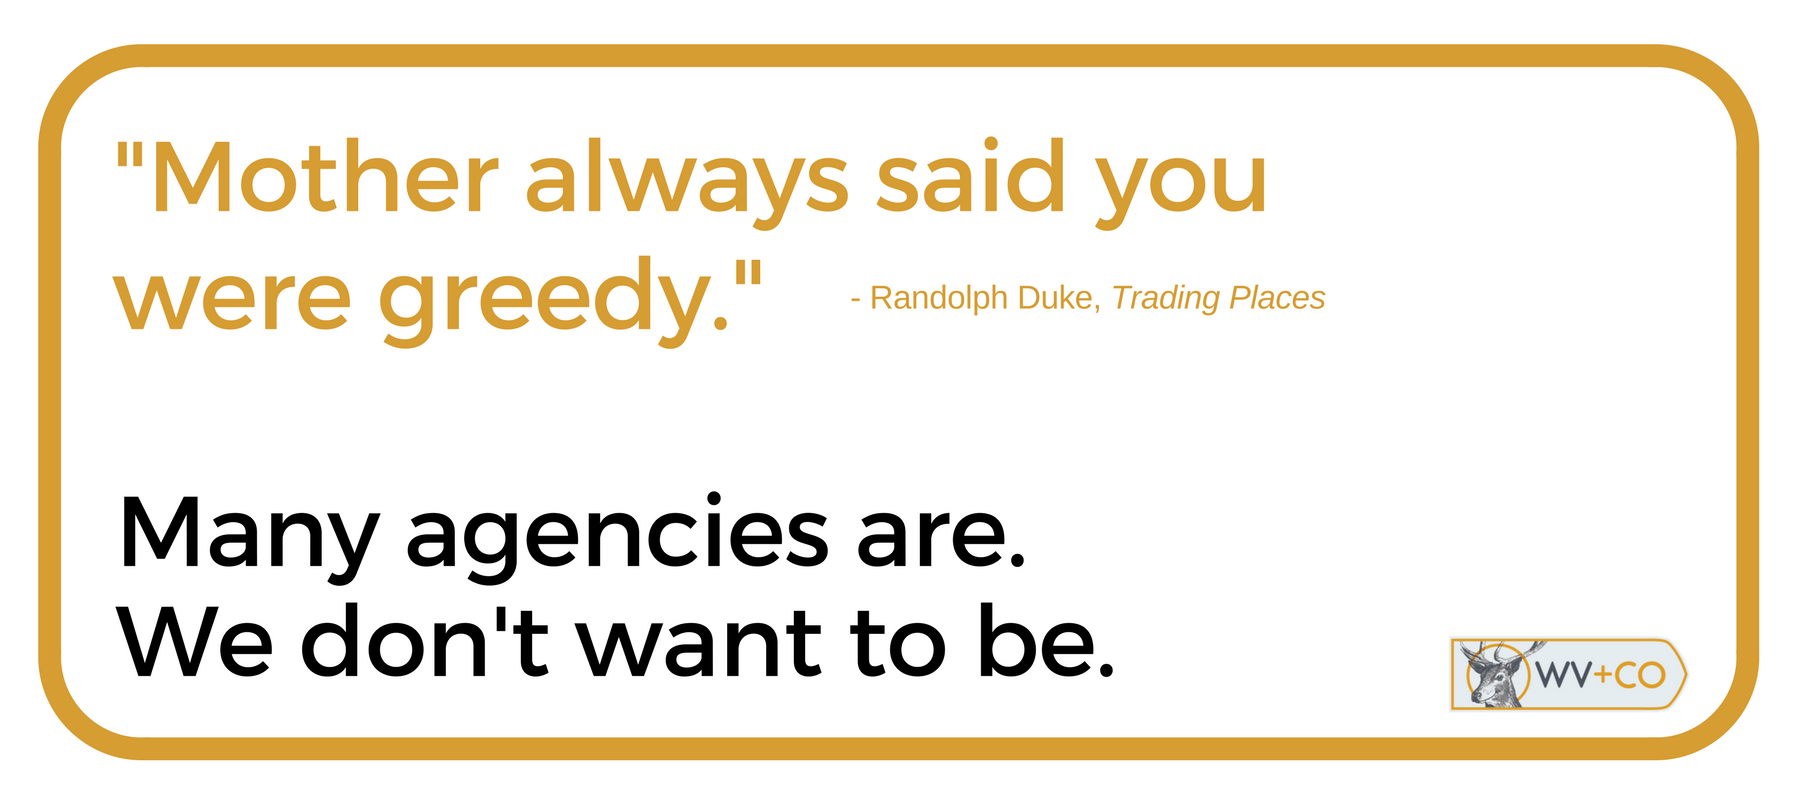 Many agencies are greedy. We don't want to be.